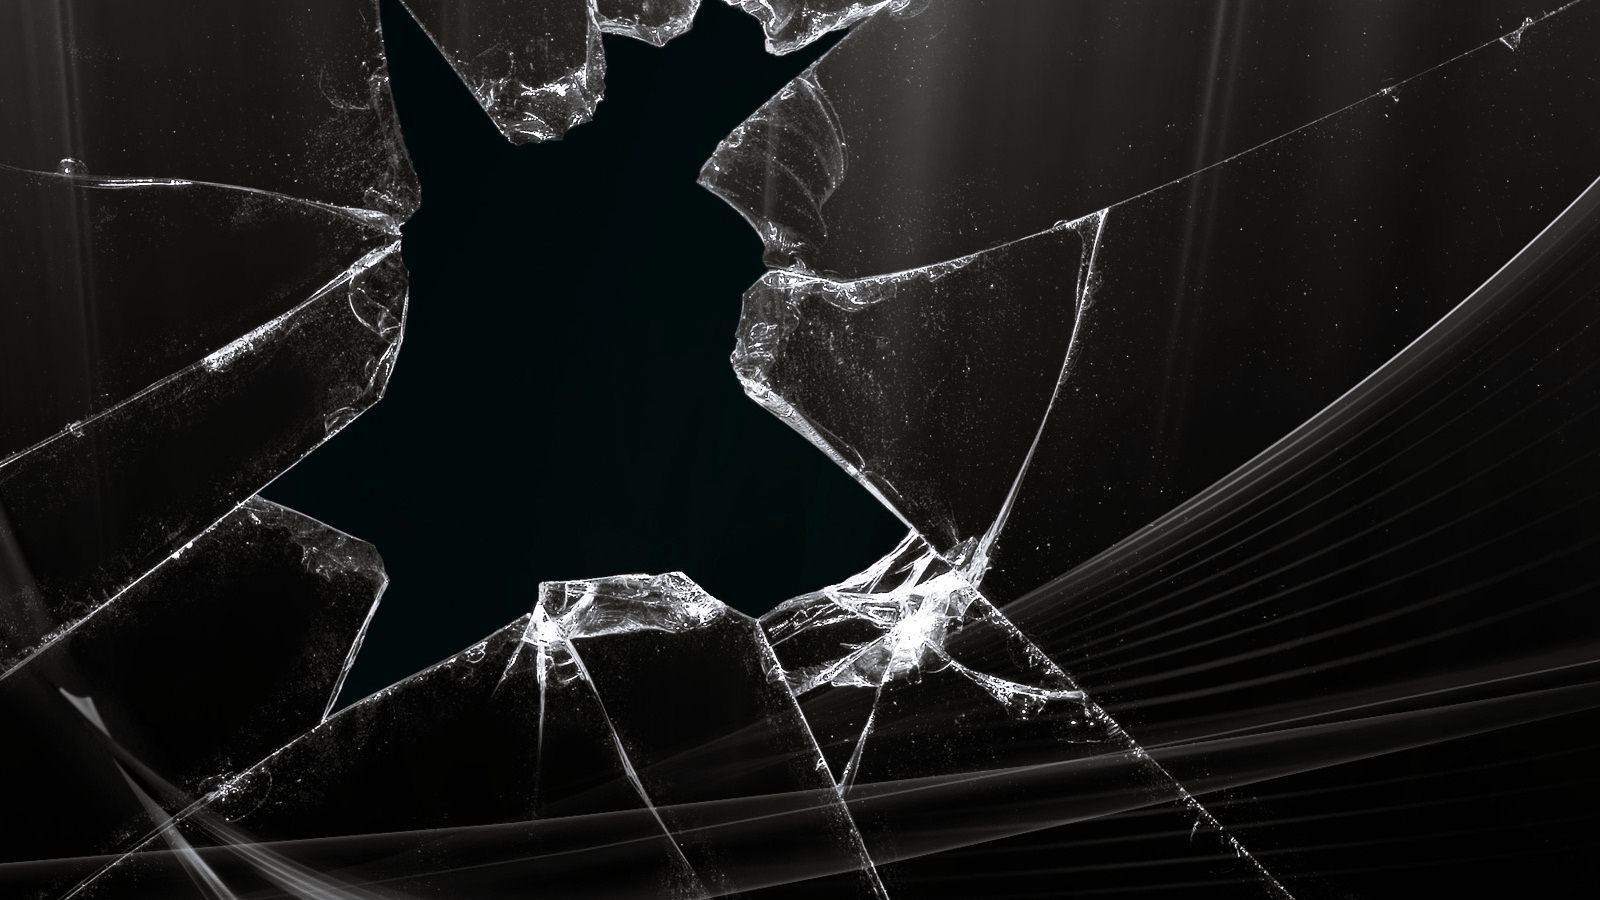 Broken-Screen-wallpaper-wpc9203239